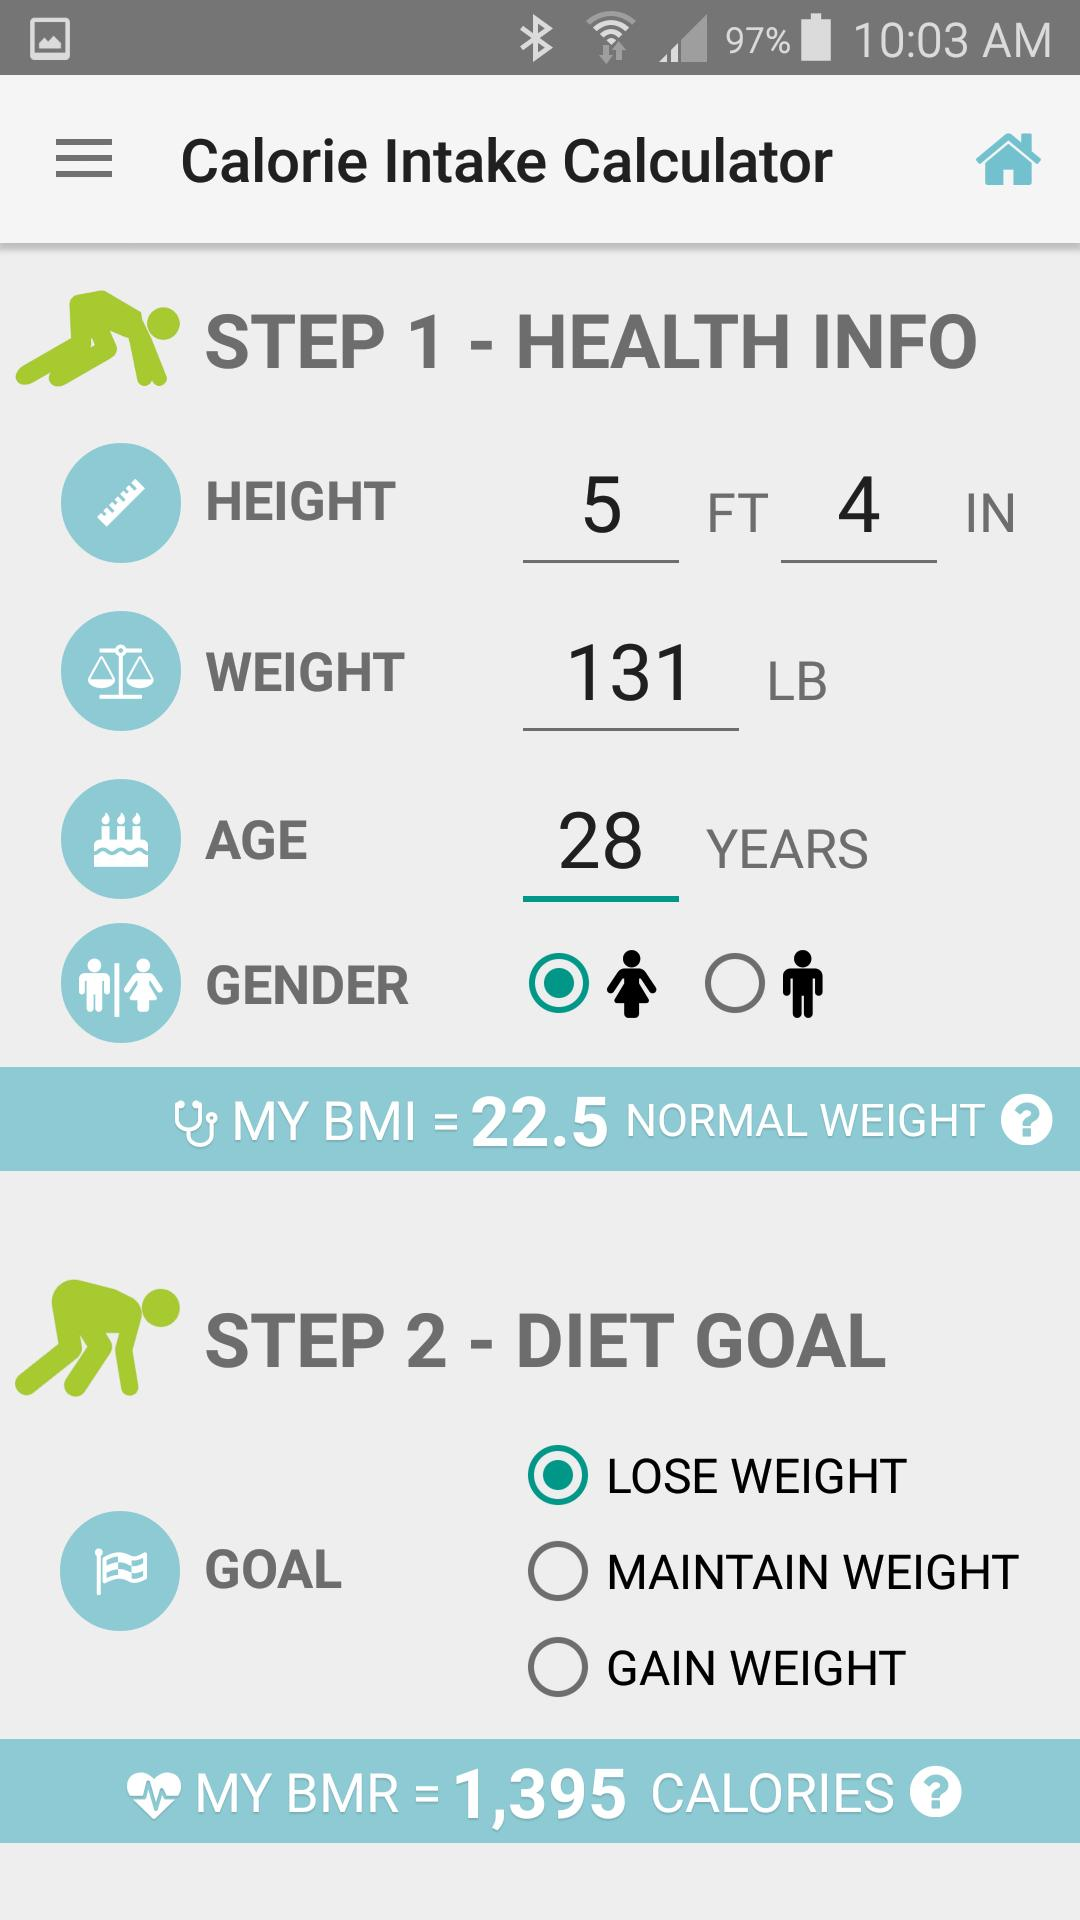 Calories Intake Calculator for Android - APK Download